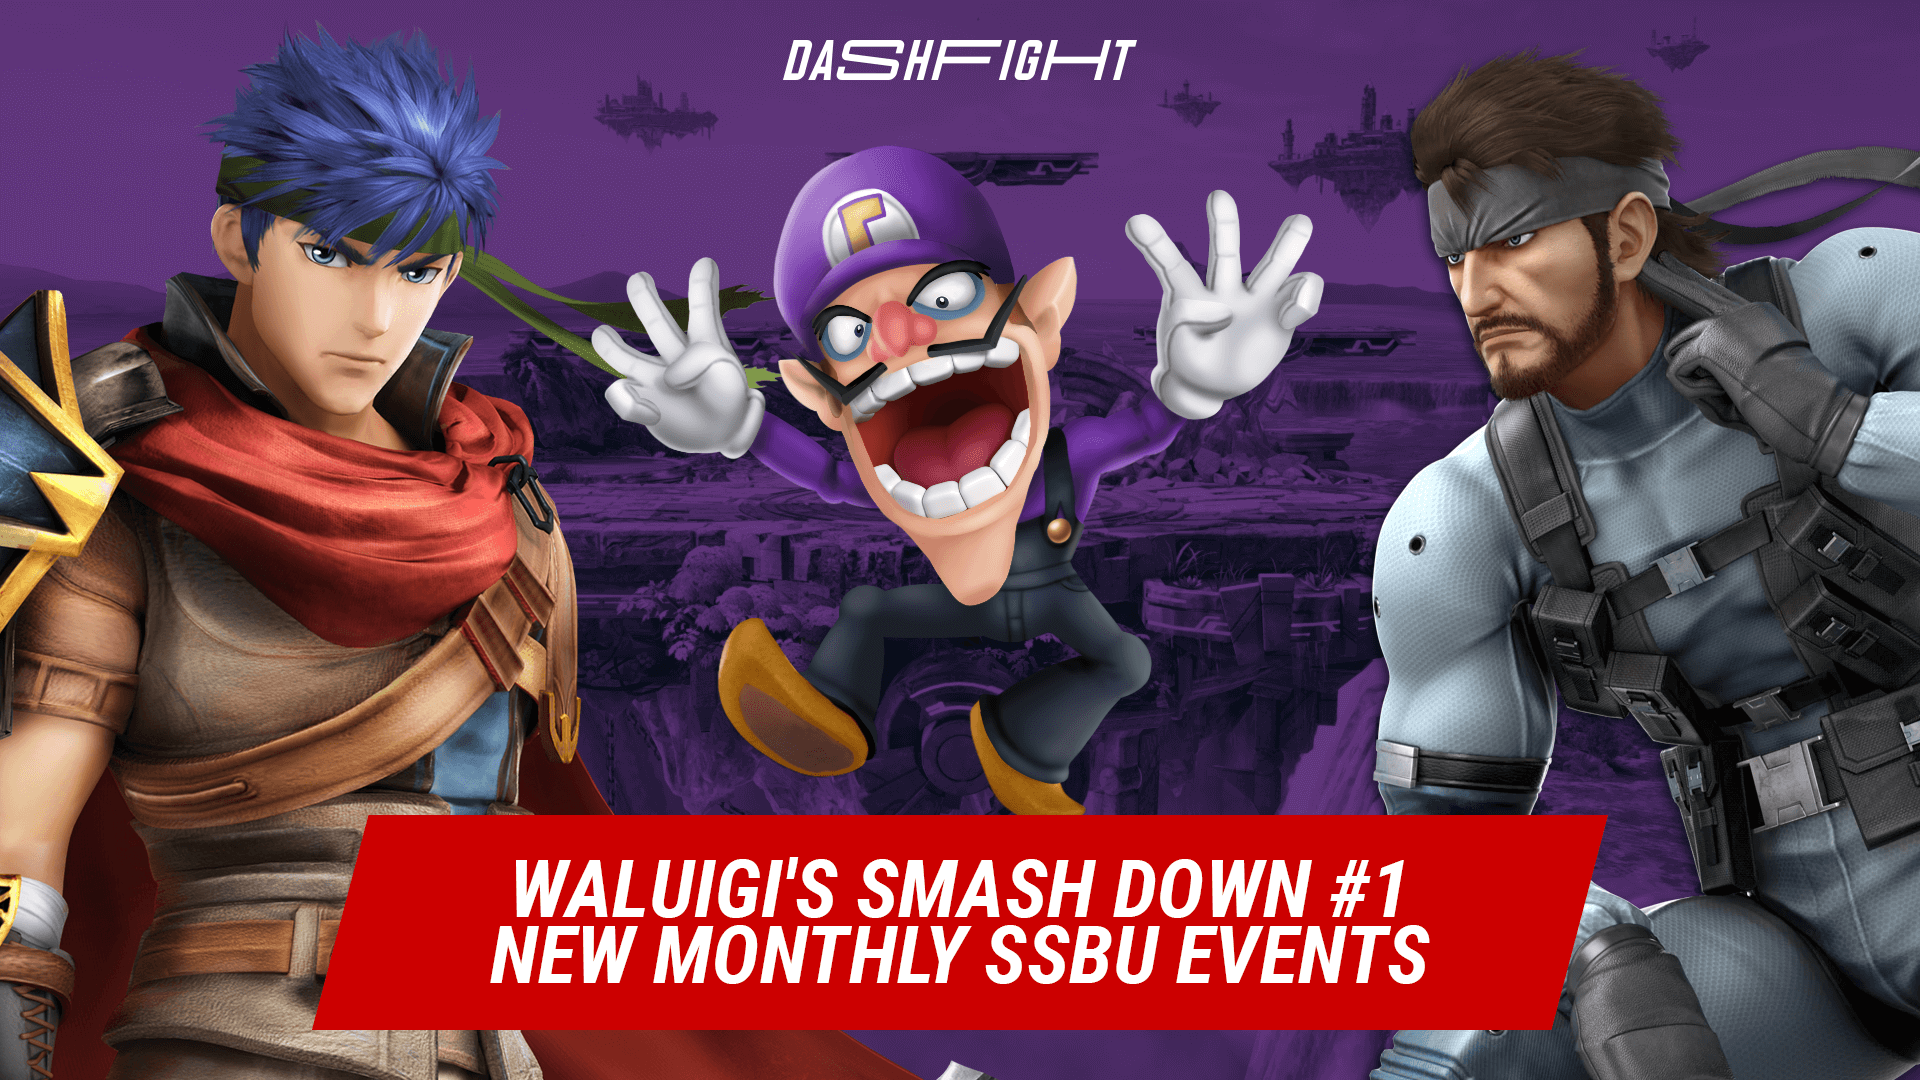 Waluigi's Smash Down #1 - Start of Monthly SSBU Events